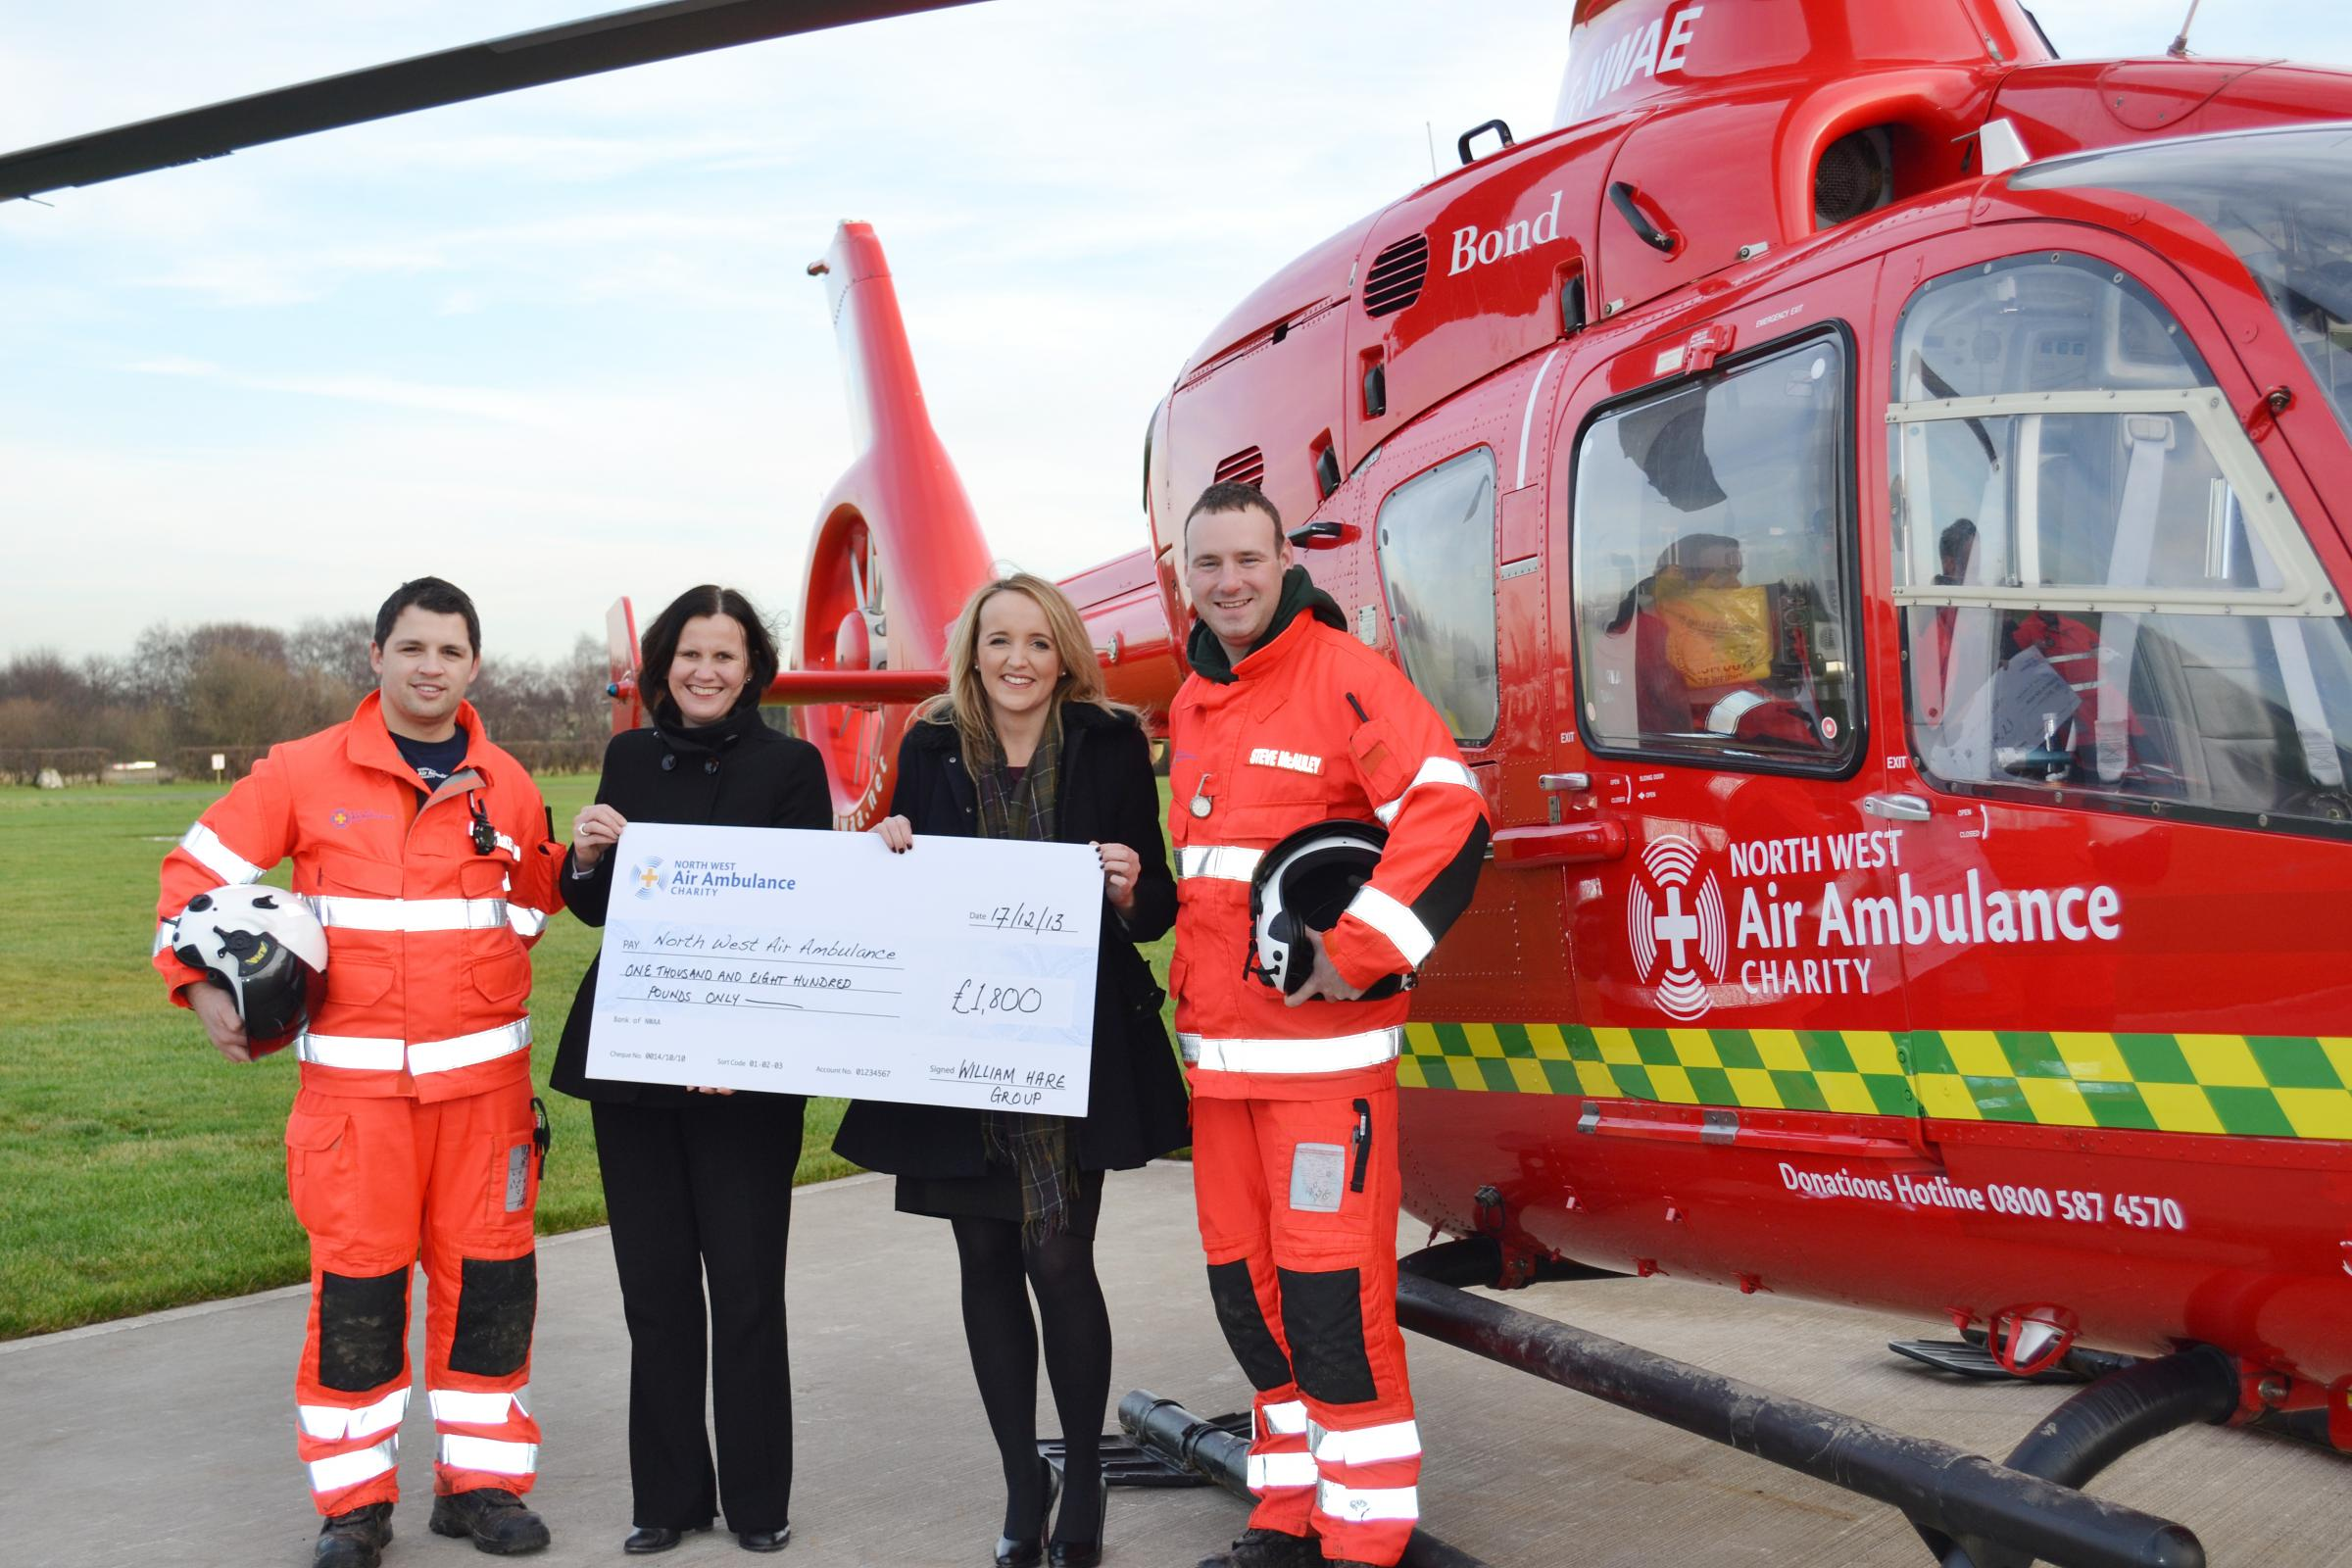 From left, Luke McKenna, Judith Watts, Gemma Torkington and Steve McCauley of the North West Air Ambulance charity